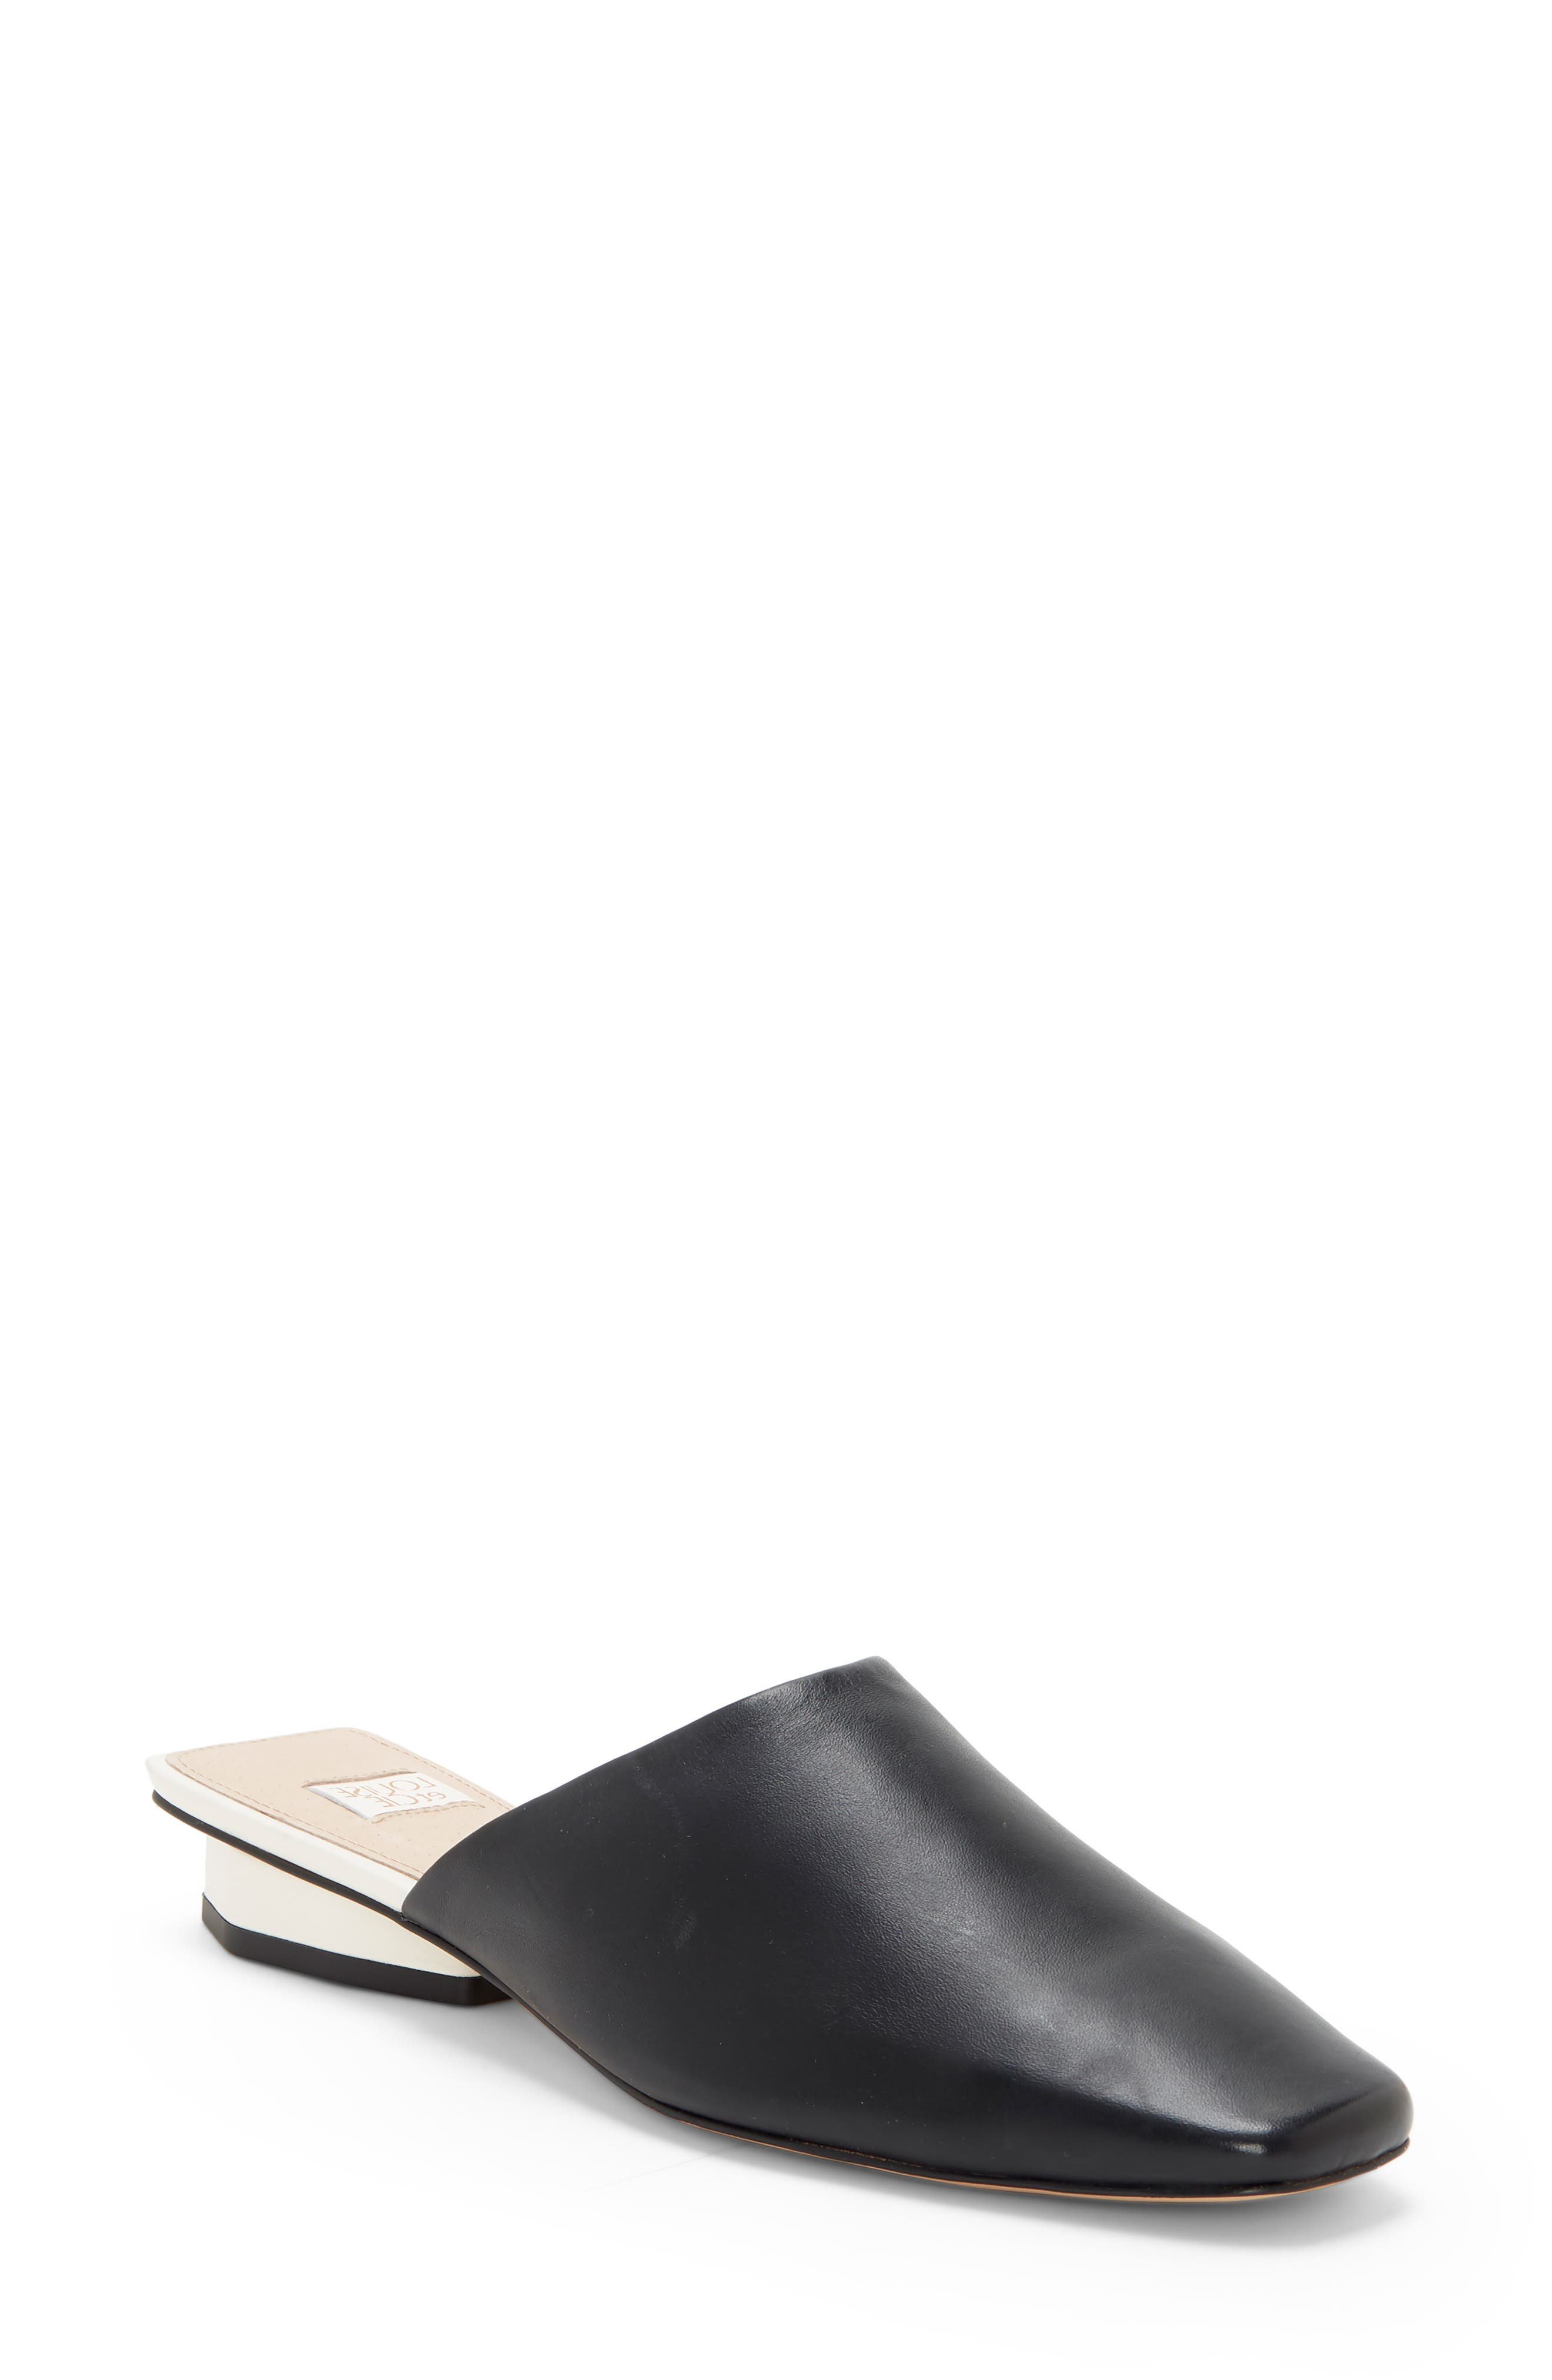 A classic with modern touches, this throw-on-and-go mule is styled with a subtle squared toe and a low octagonal heel. Style Name: Louise Et Cie Coolia Mule (Women). Style Number: 6027124. Available in stores.